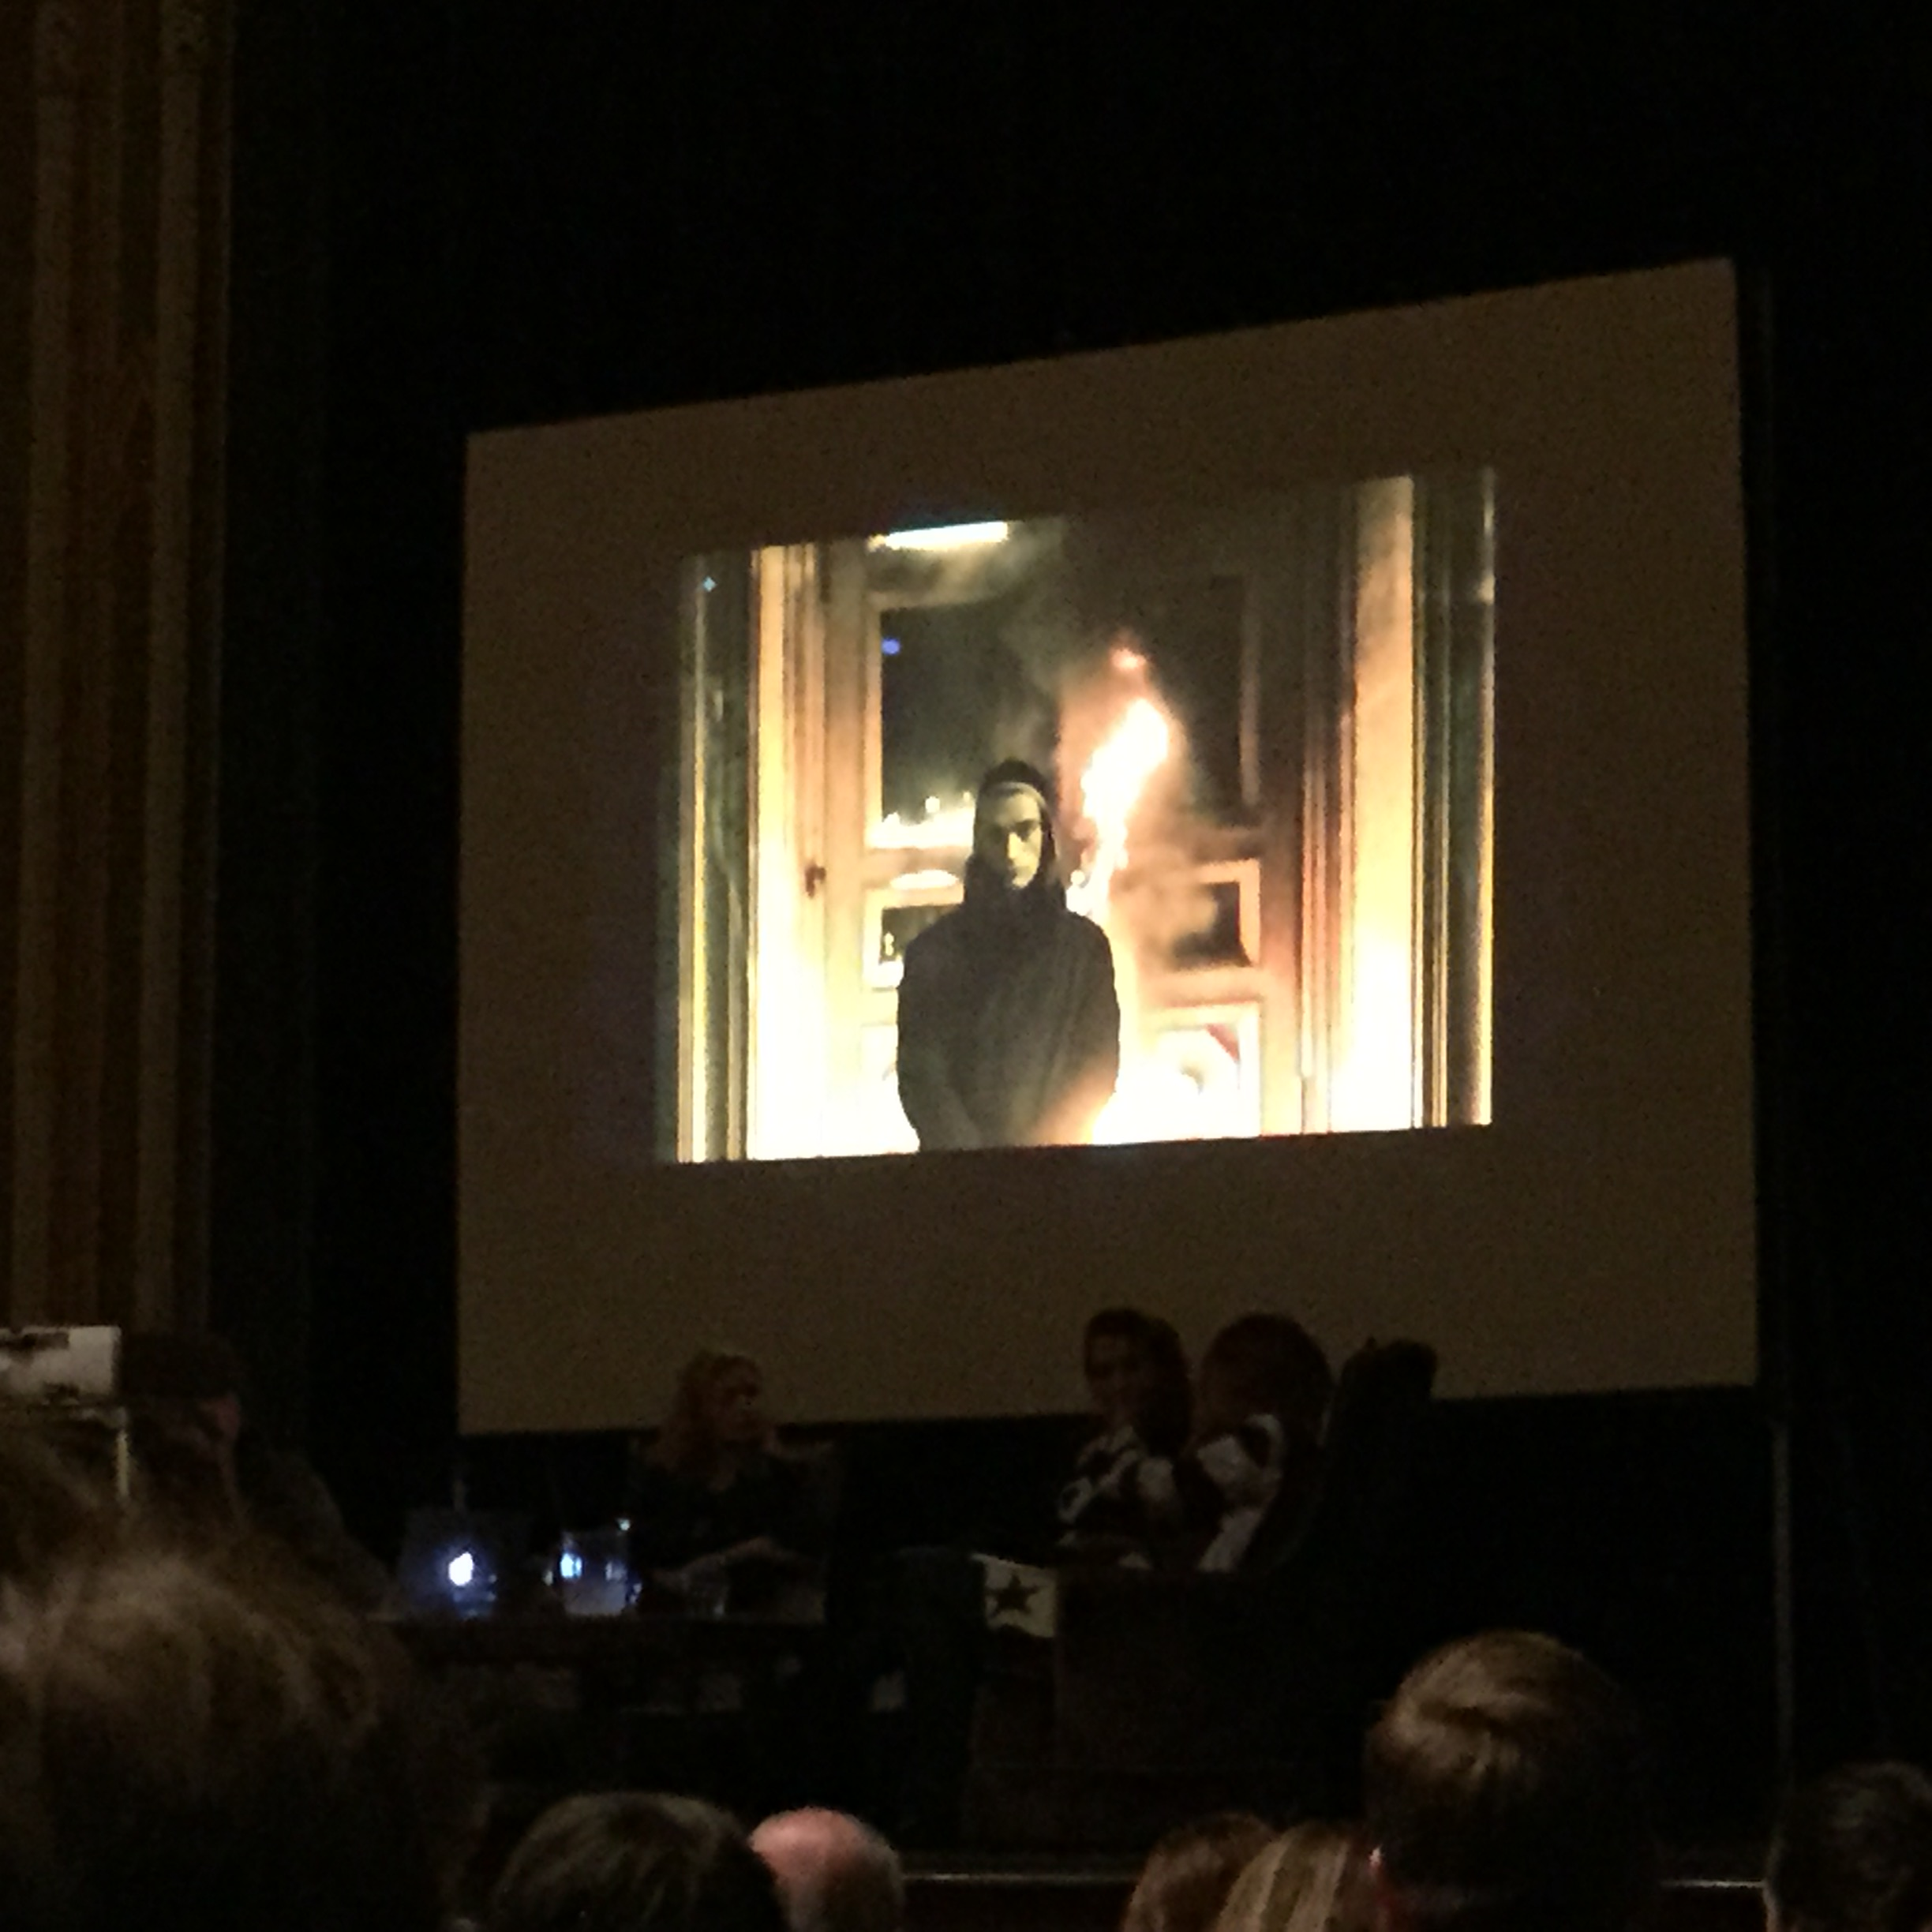 The work of Peter Pavlensky, on screen at Hallwalls presented by Pussy Riot